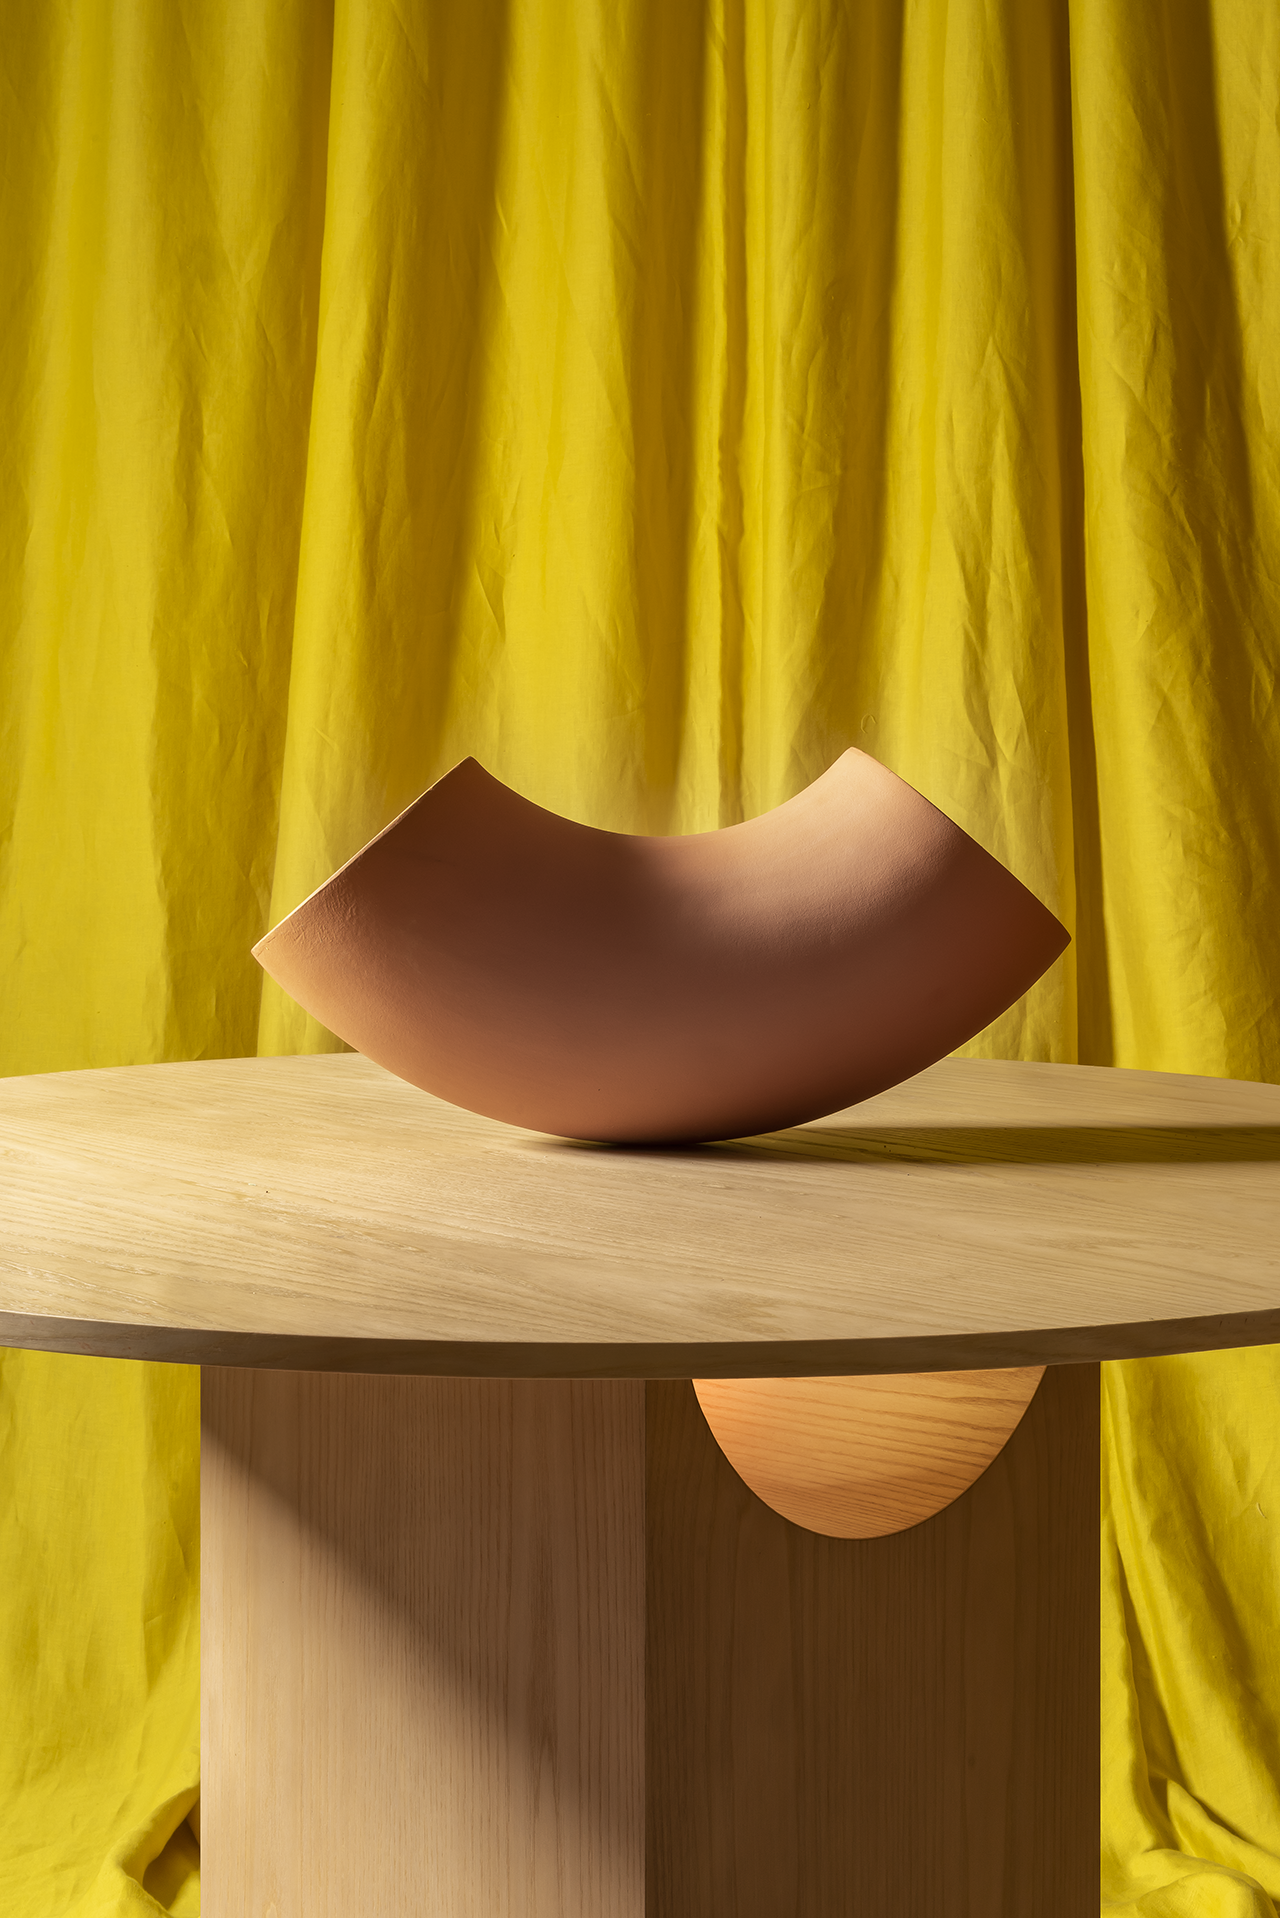 table with object